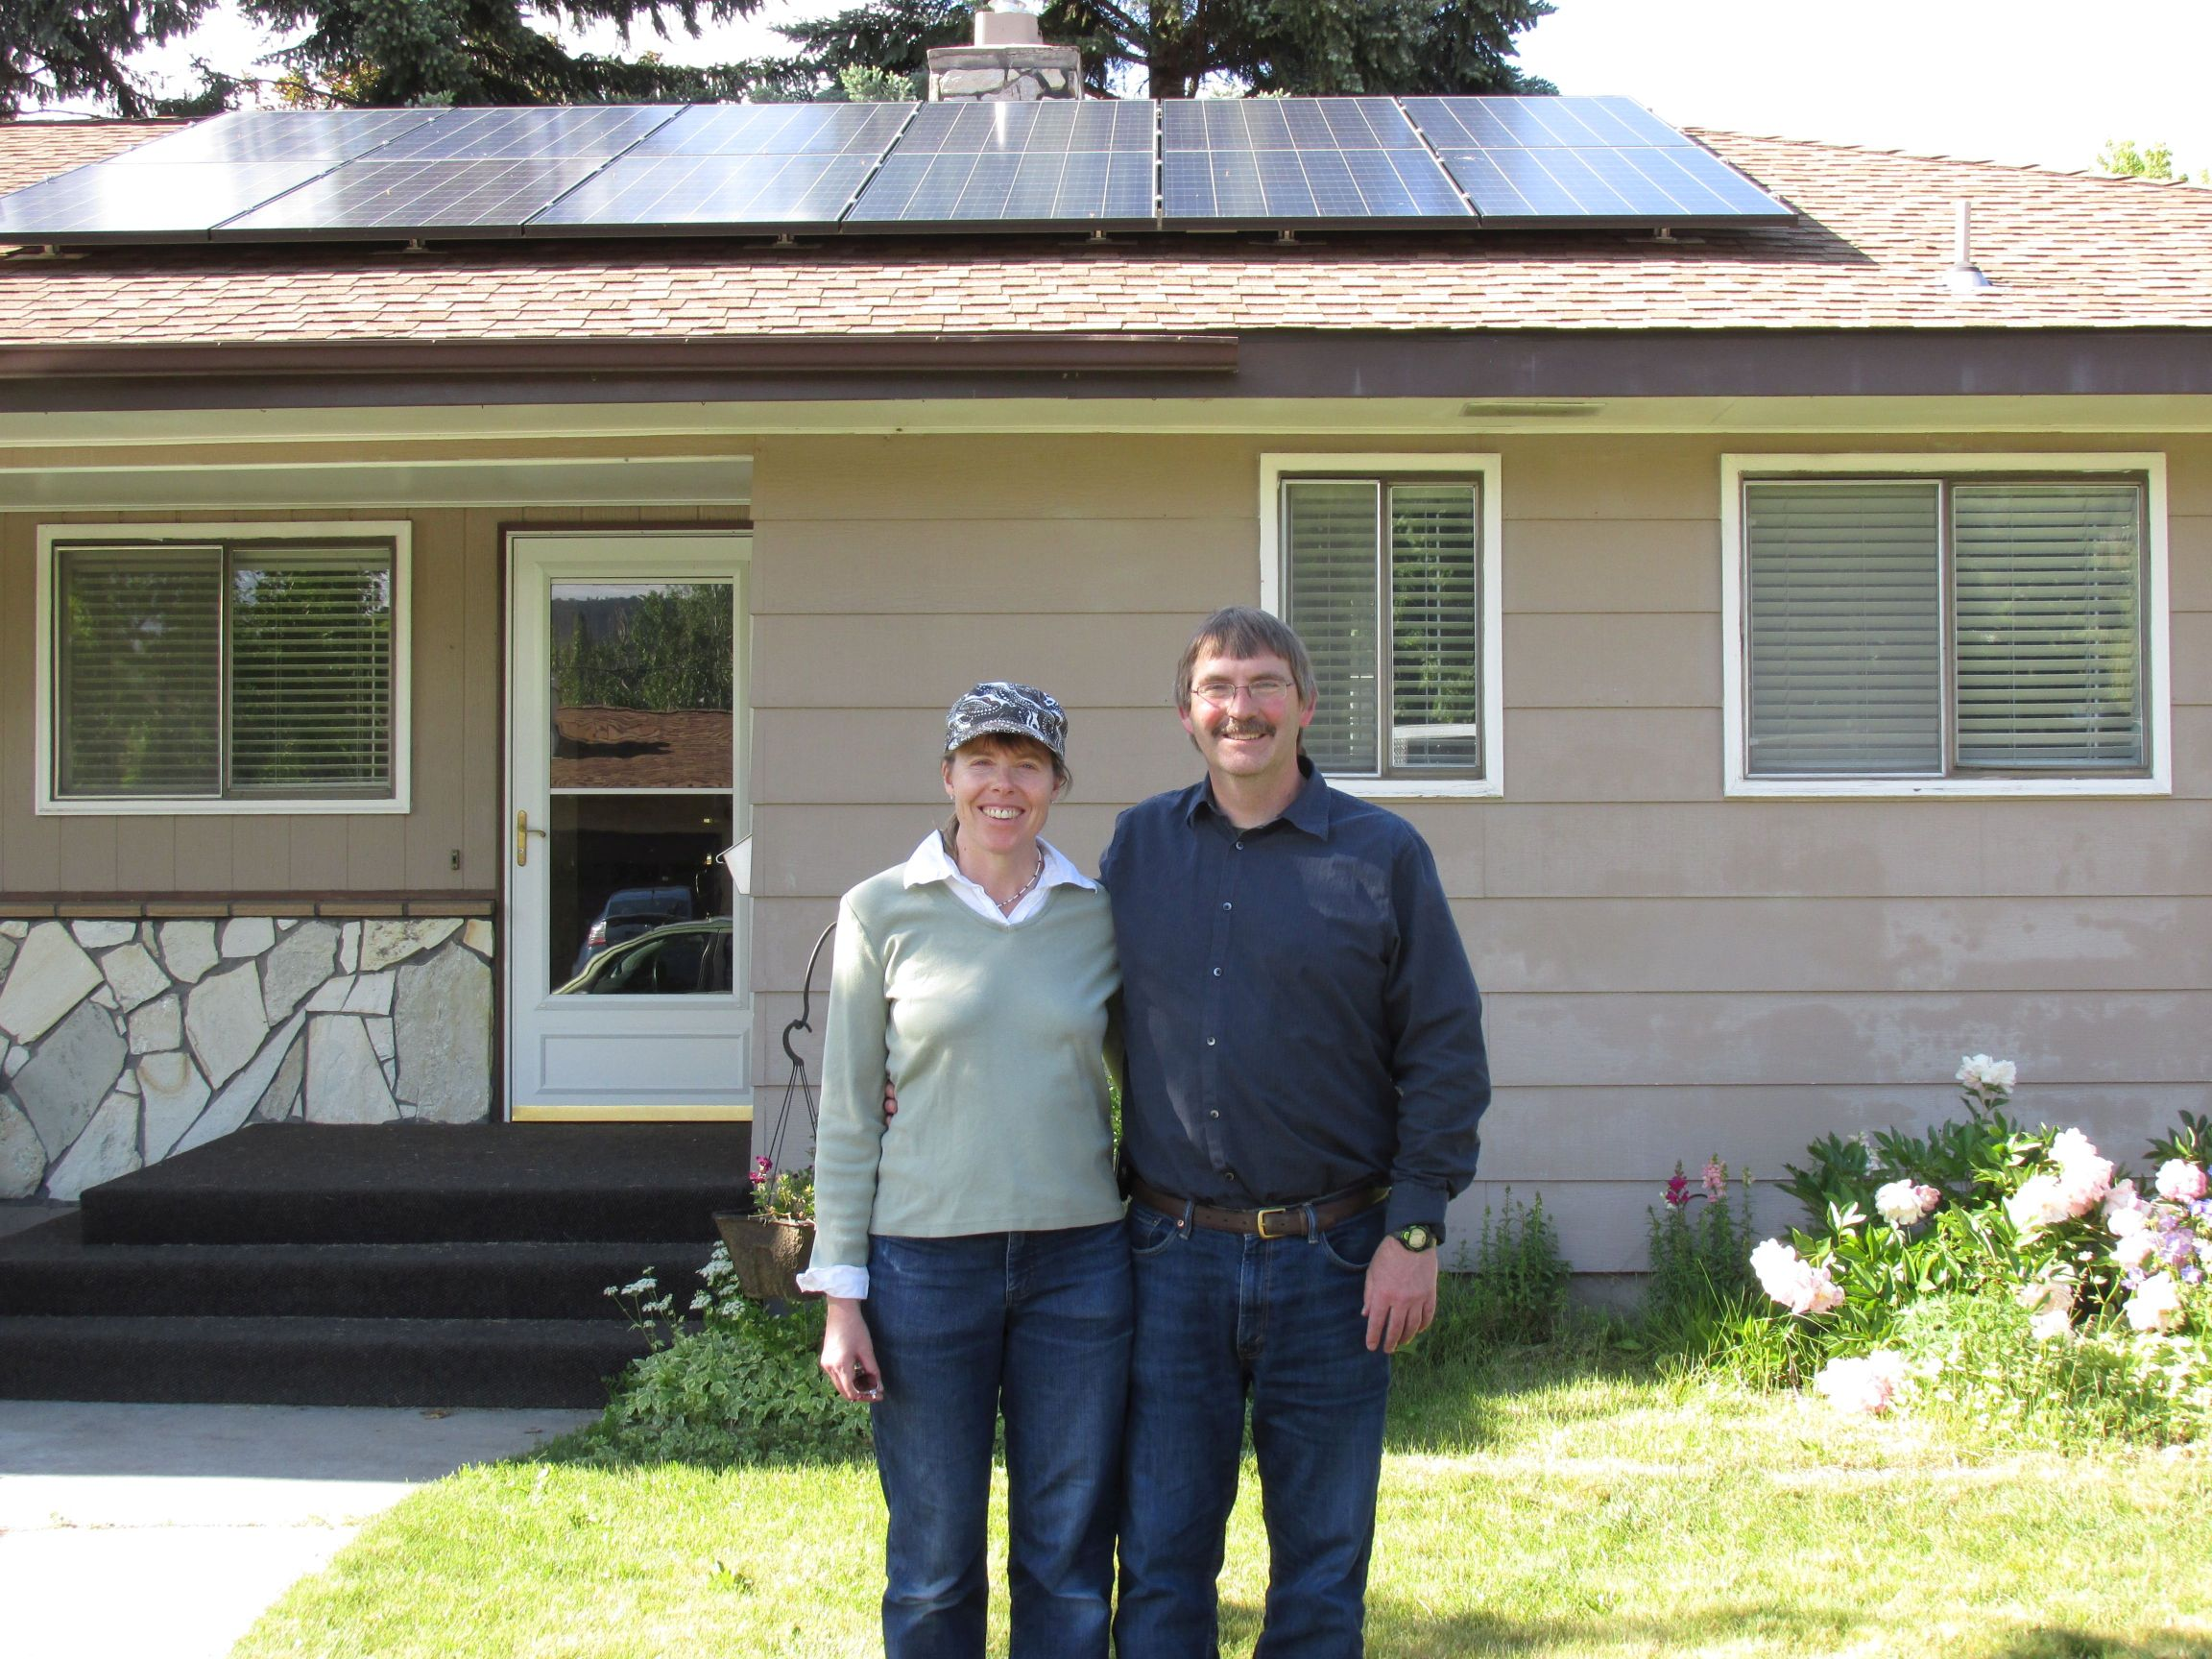 'Solarize' Makes Solar Simple for Missoula Couple